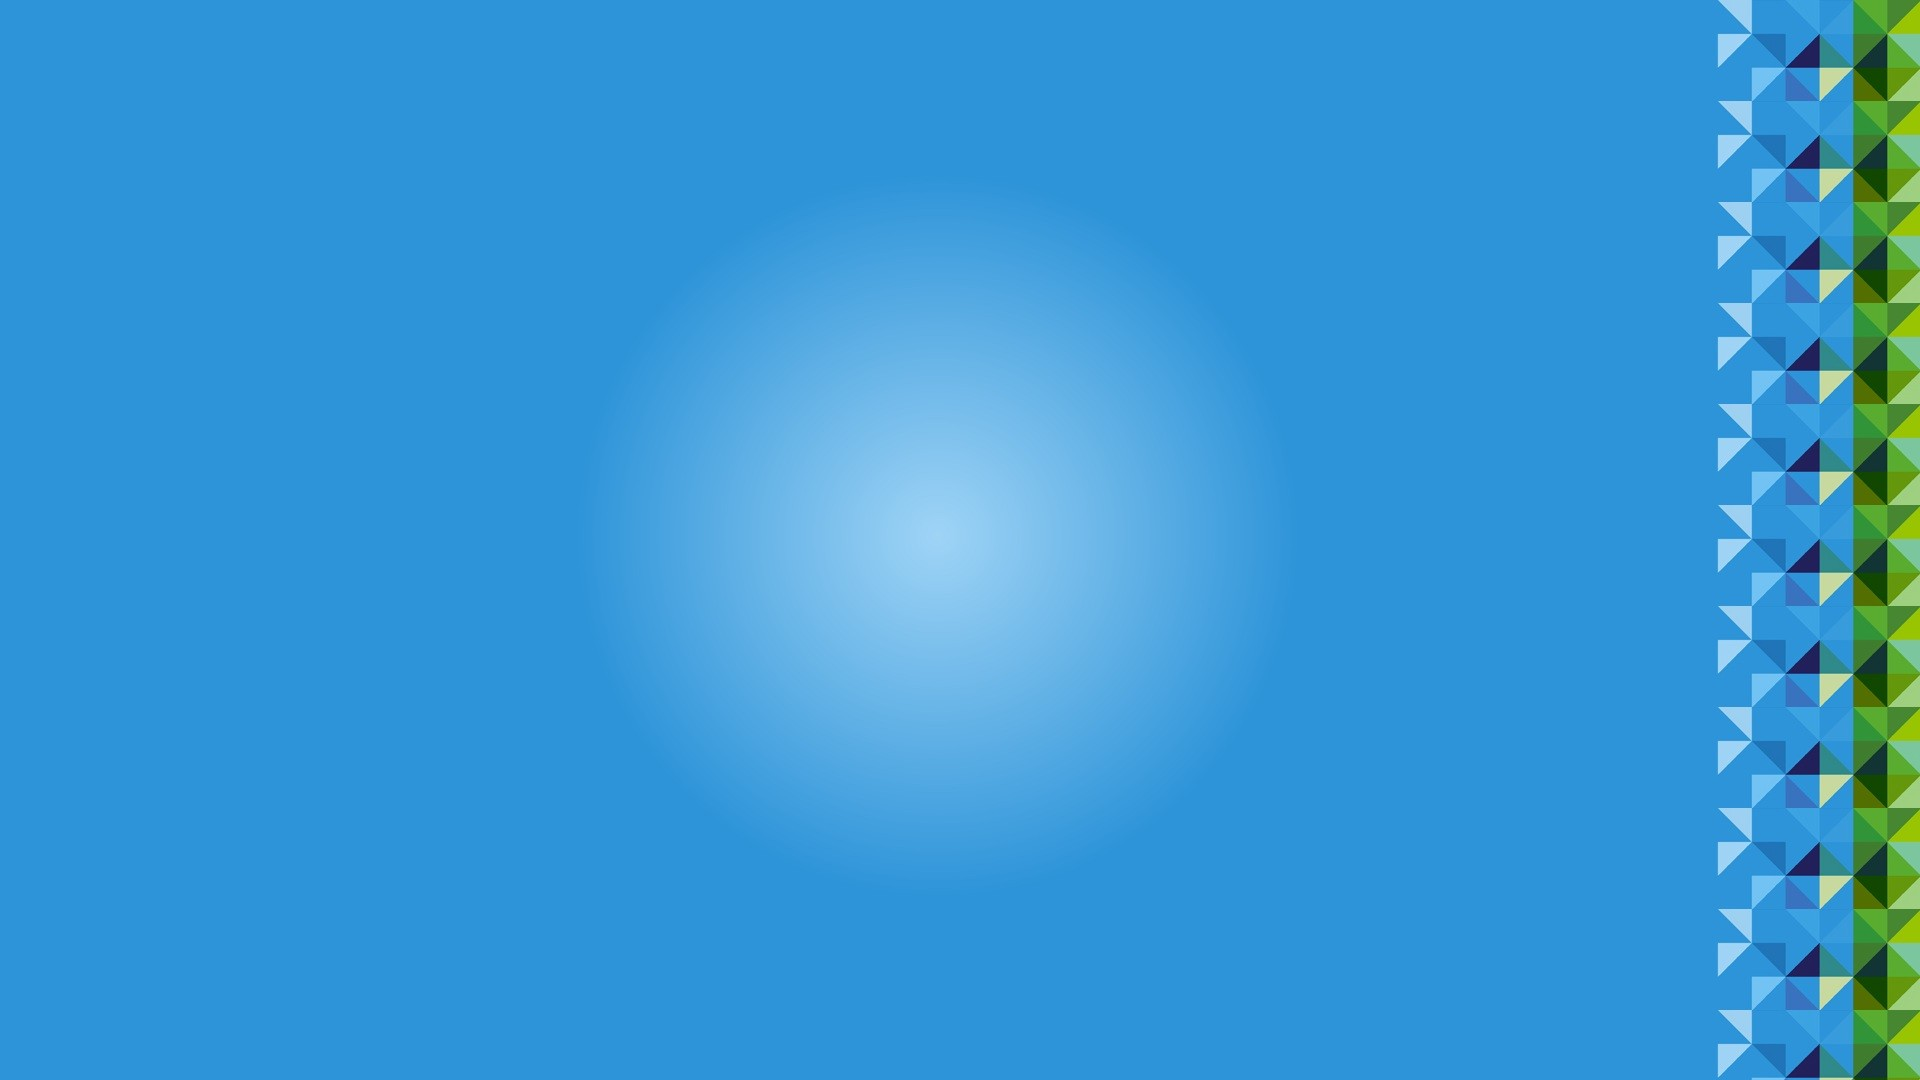 Blue and Green background ·① Download free beautiful full